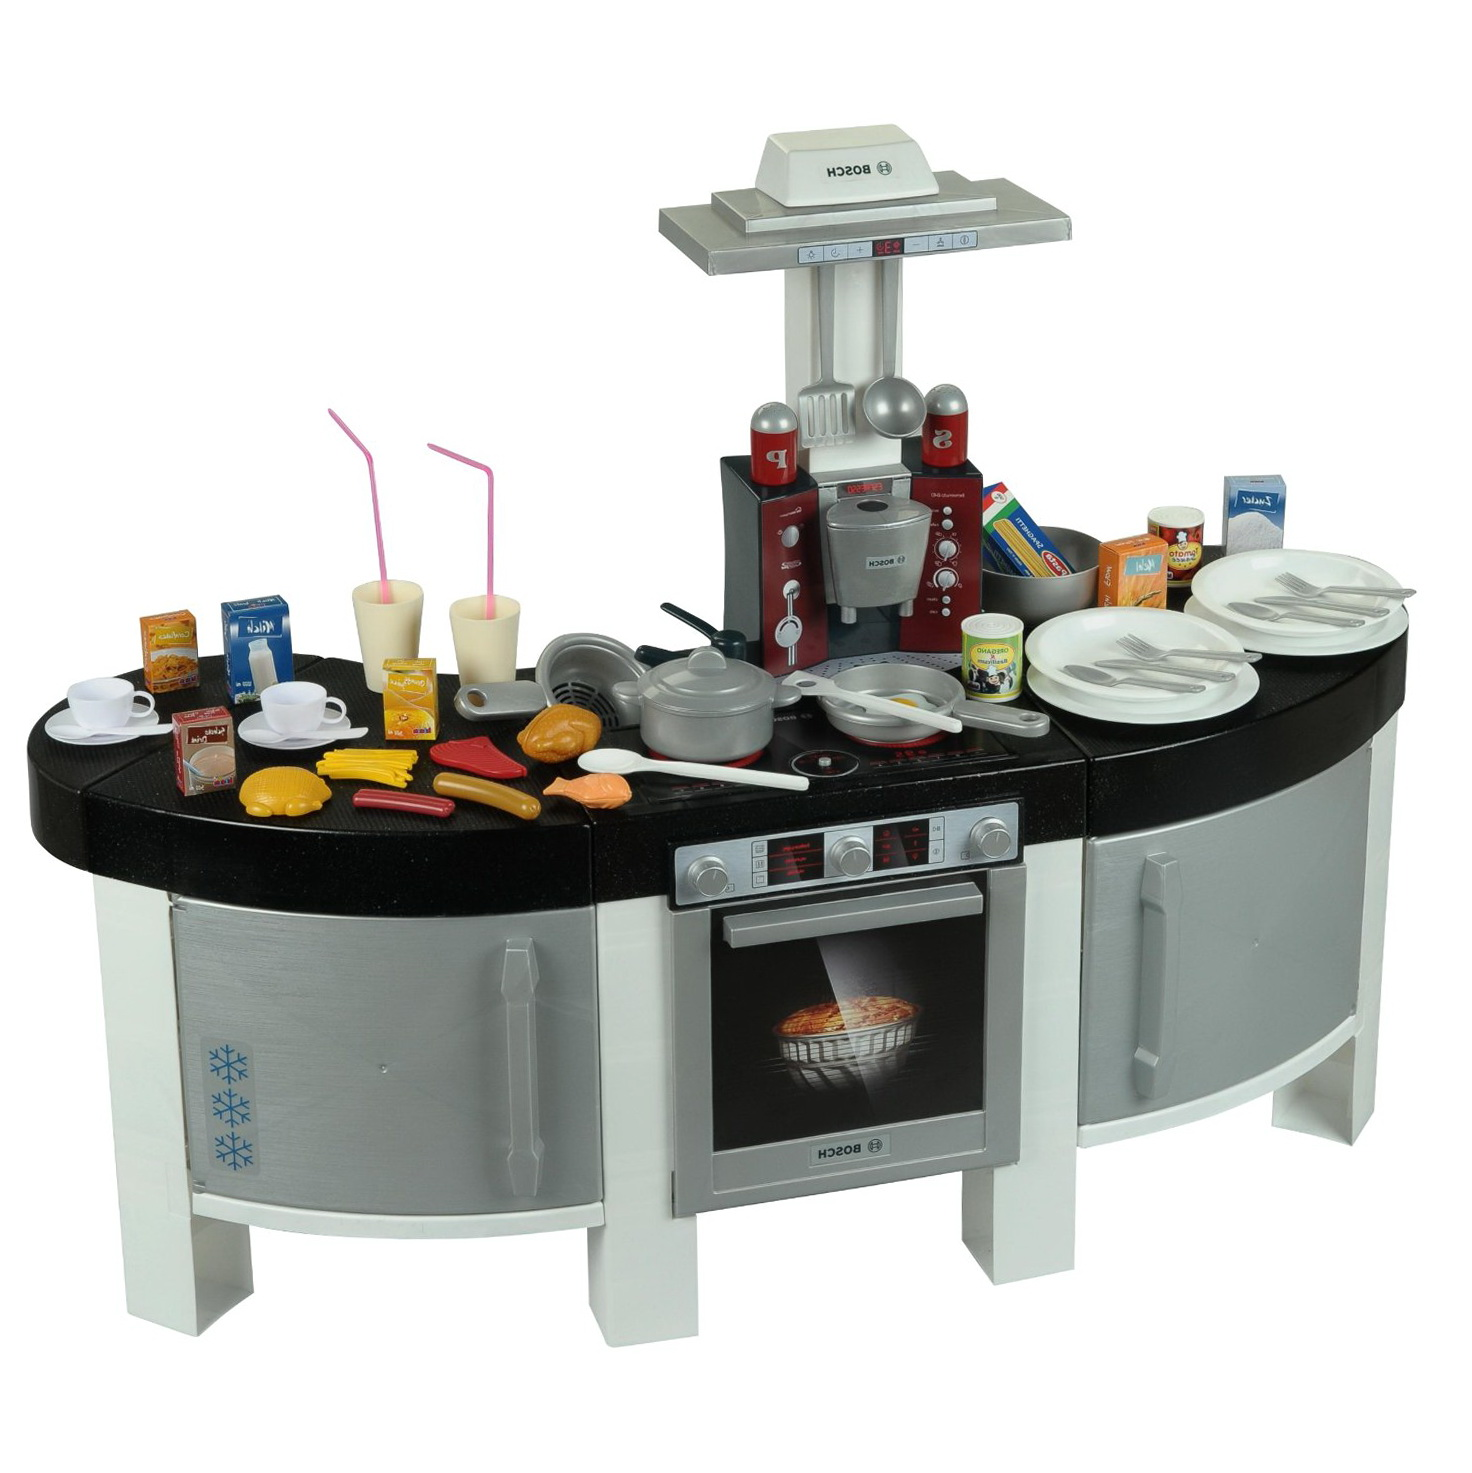 Toy Kitchen Sets Amazon